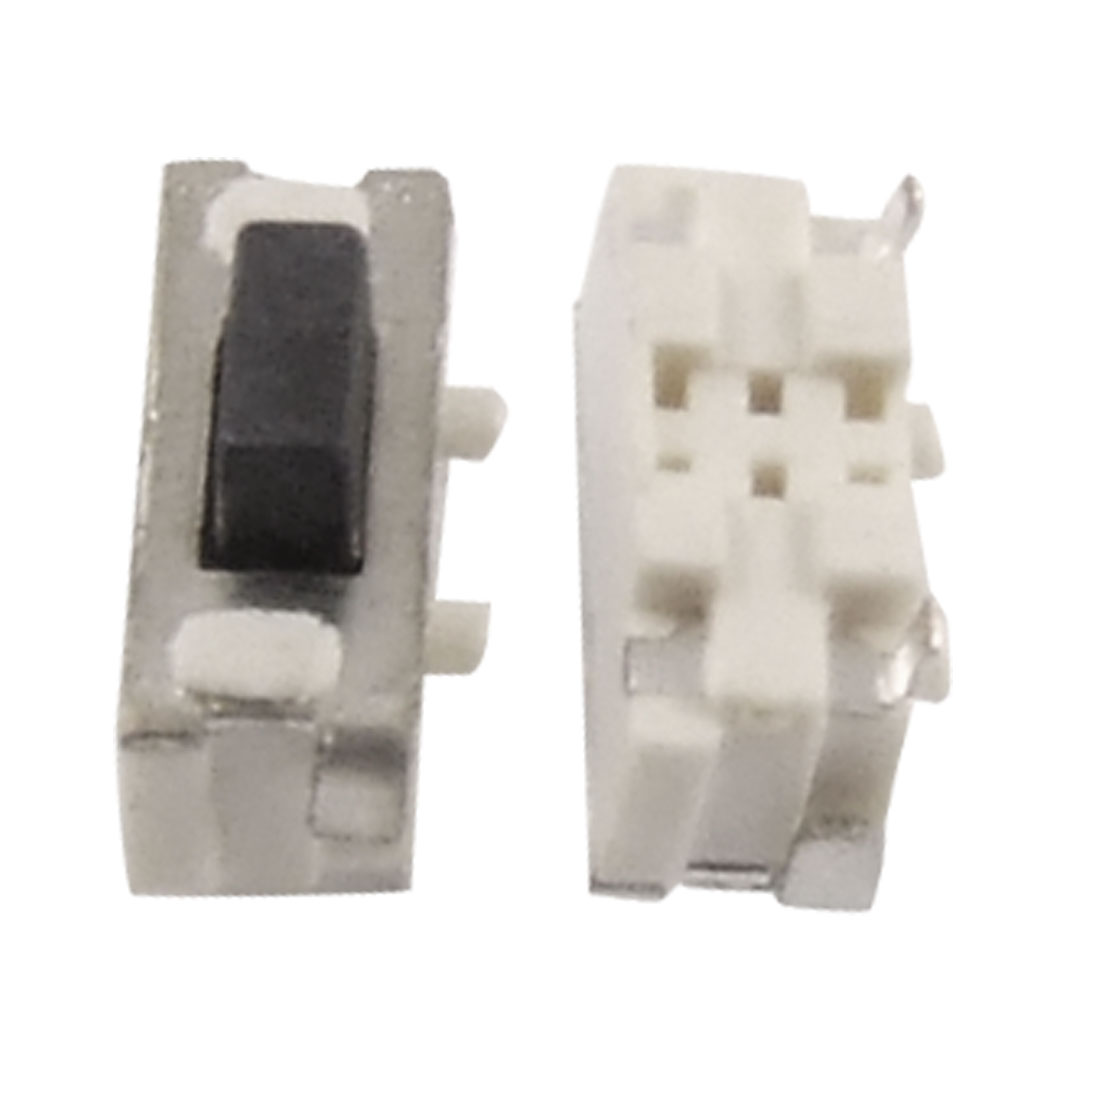 50 Pcs Momentary Tactile Push Button Switch 1.9 x 4.5 x 3.5mm SMD Surface Mount NO